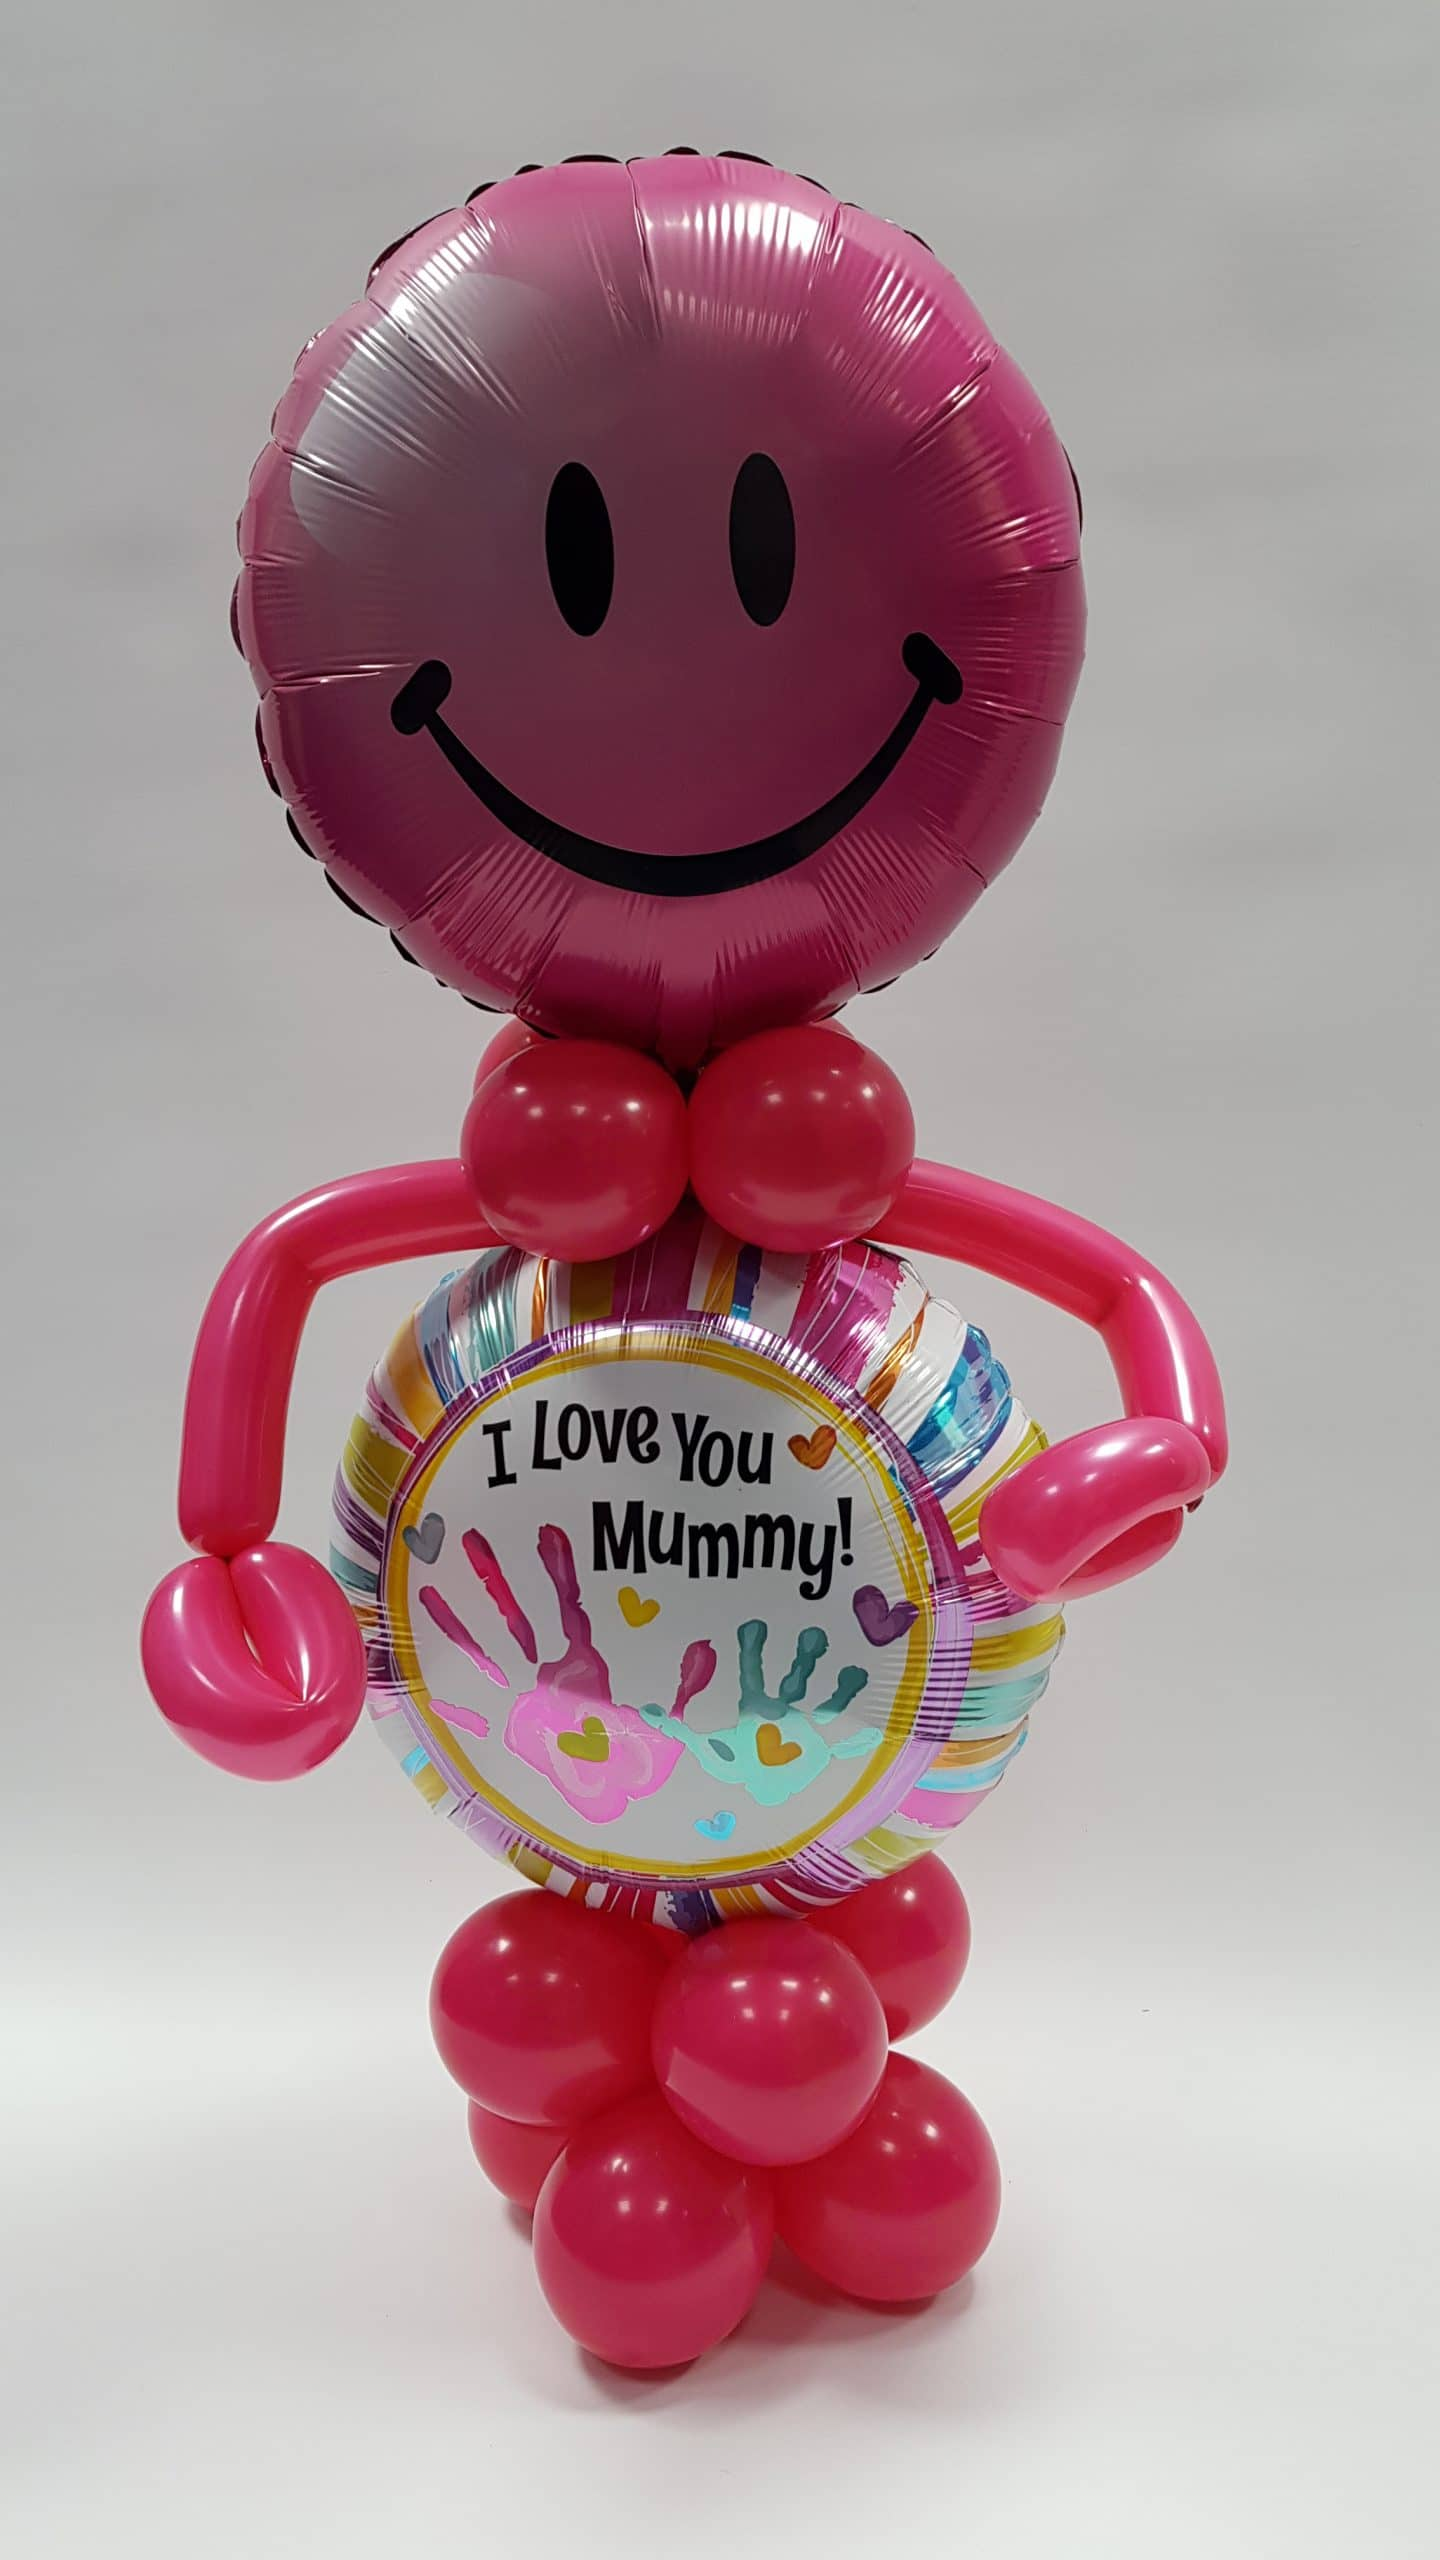 I love you mummy balloon man available from Cardiff Balloons